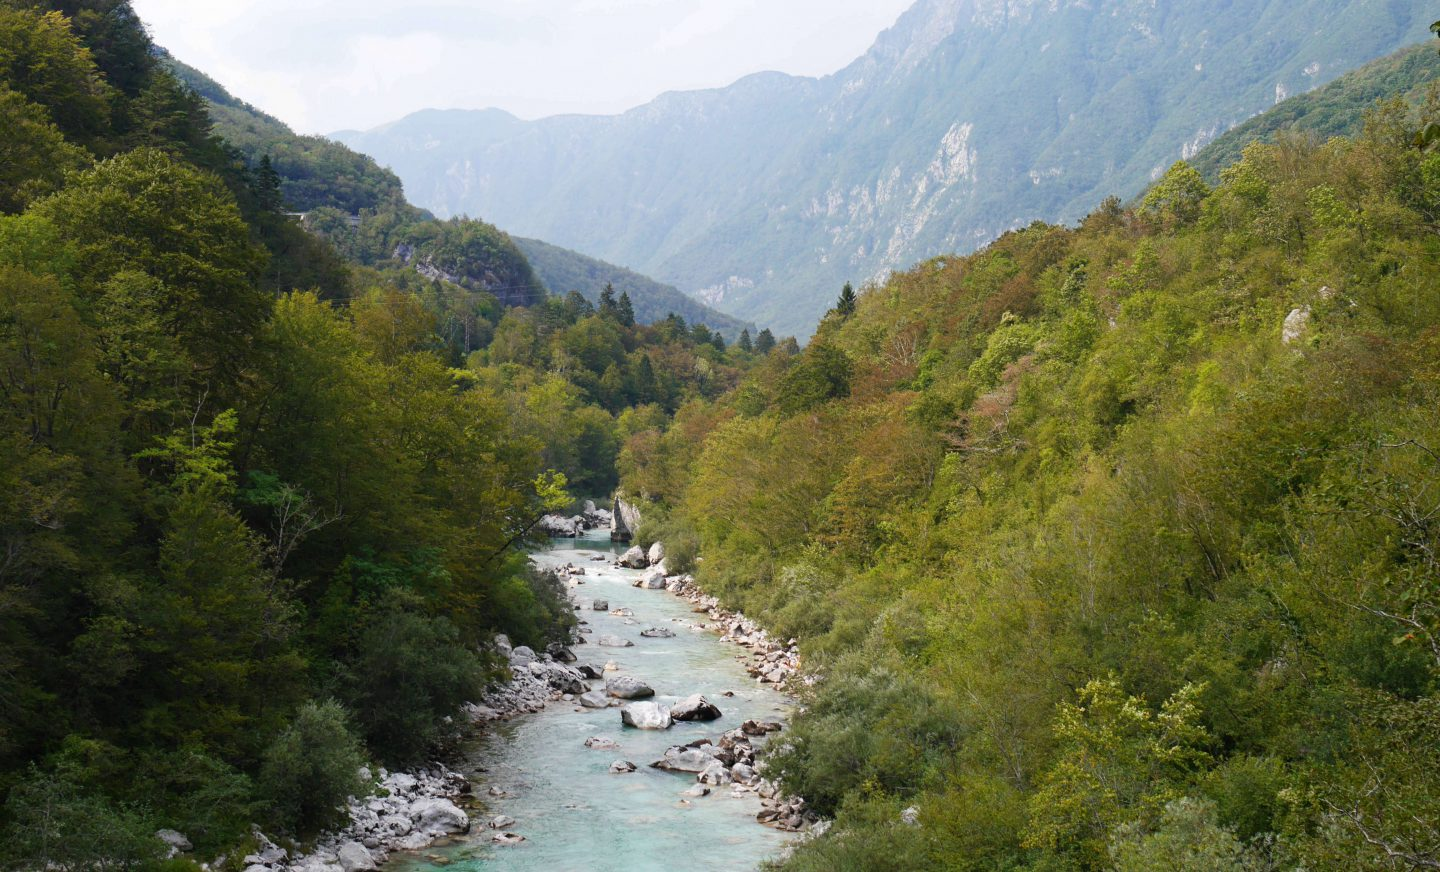 Slovenia – Mountain biking along the crystal clear Soča